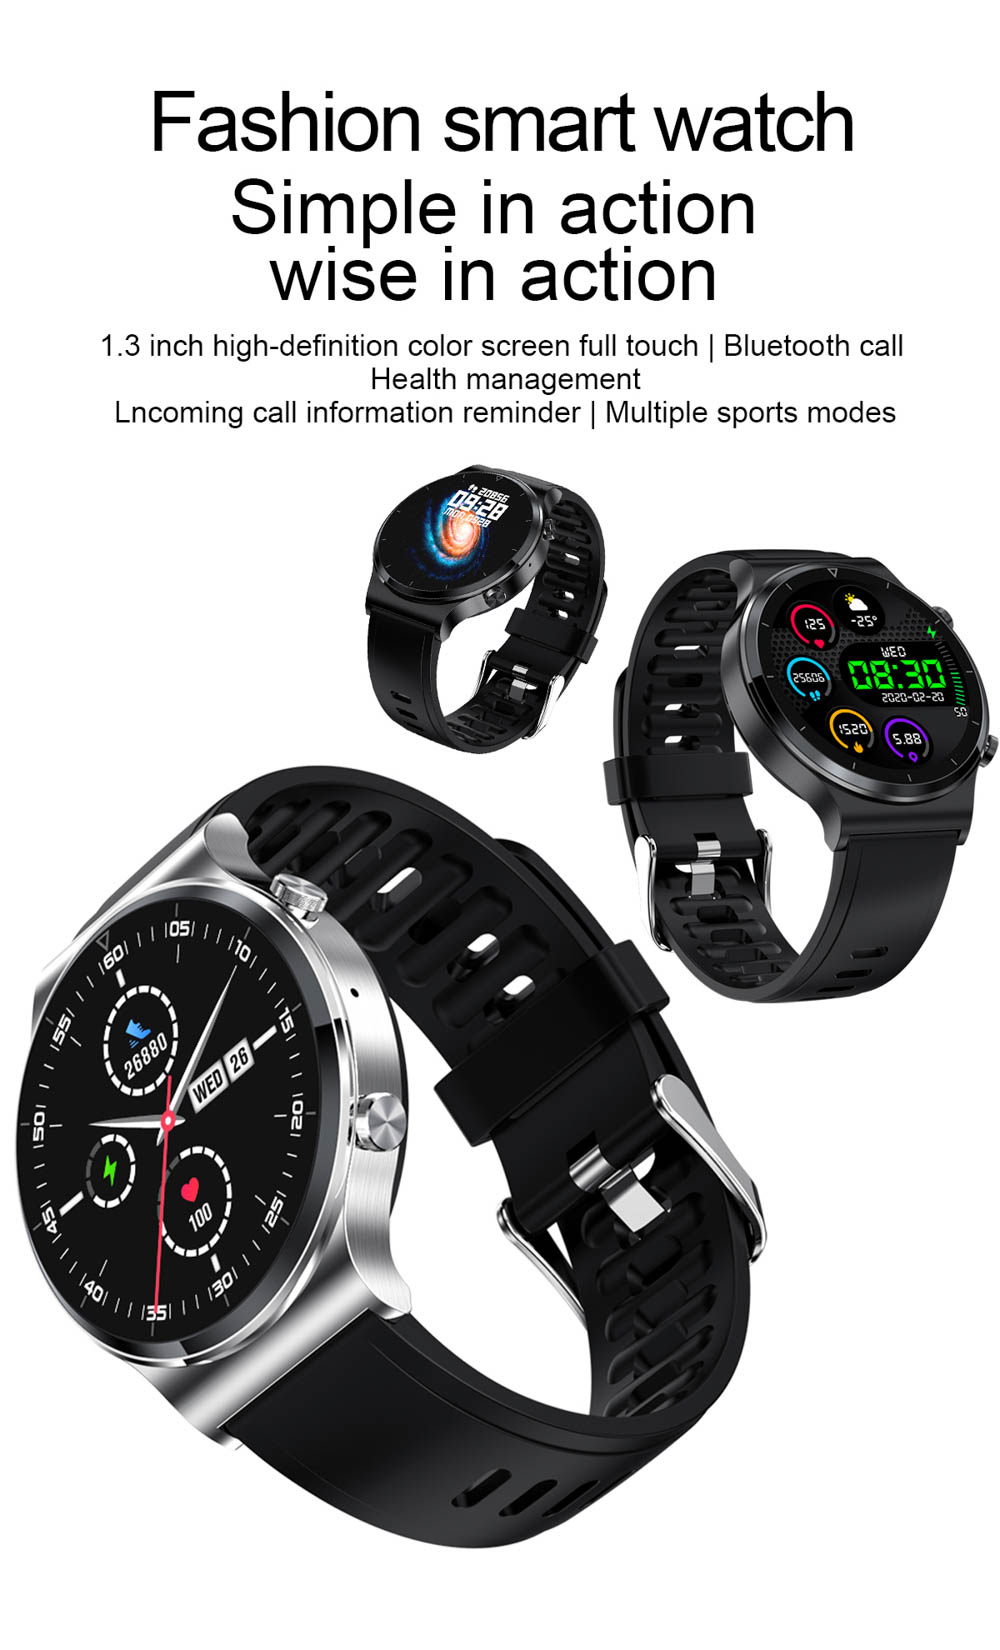 Hbbcfb68388e24cfca3f7aa867785d7a56 NUOBO 2021 New Smart Watch Men Bluetooth Call Heart Rate Blood Pressure Sports IP68 Waterproof Smartwatch for Android IOS Phone